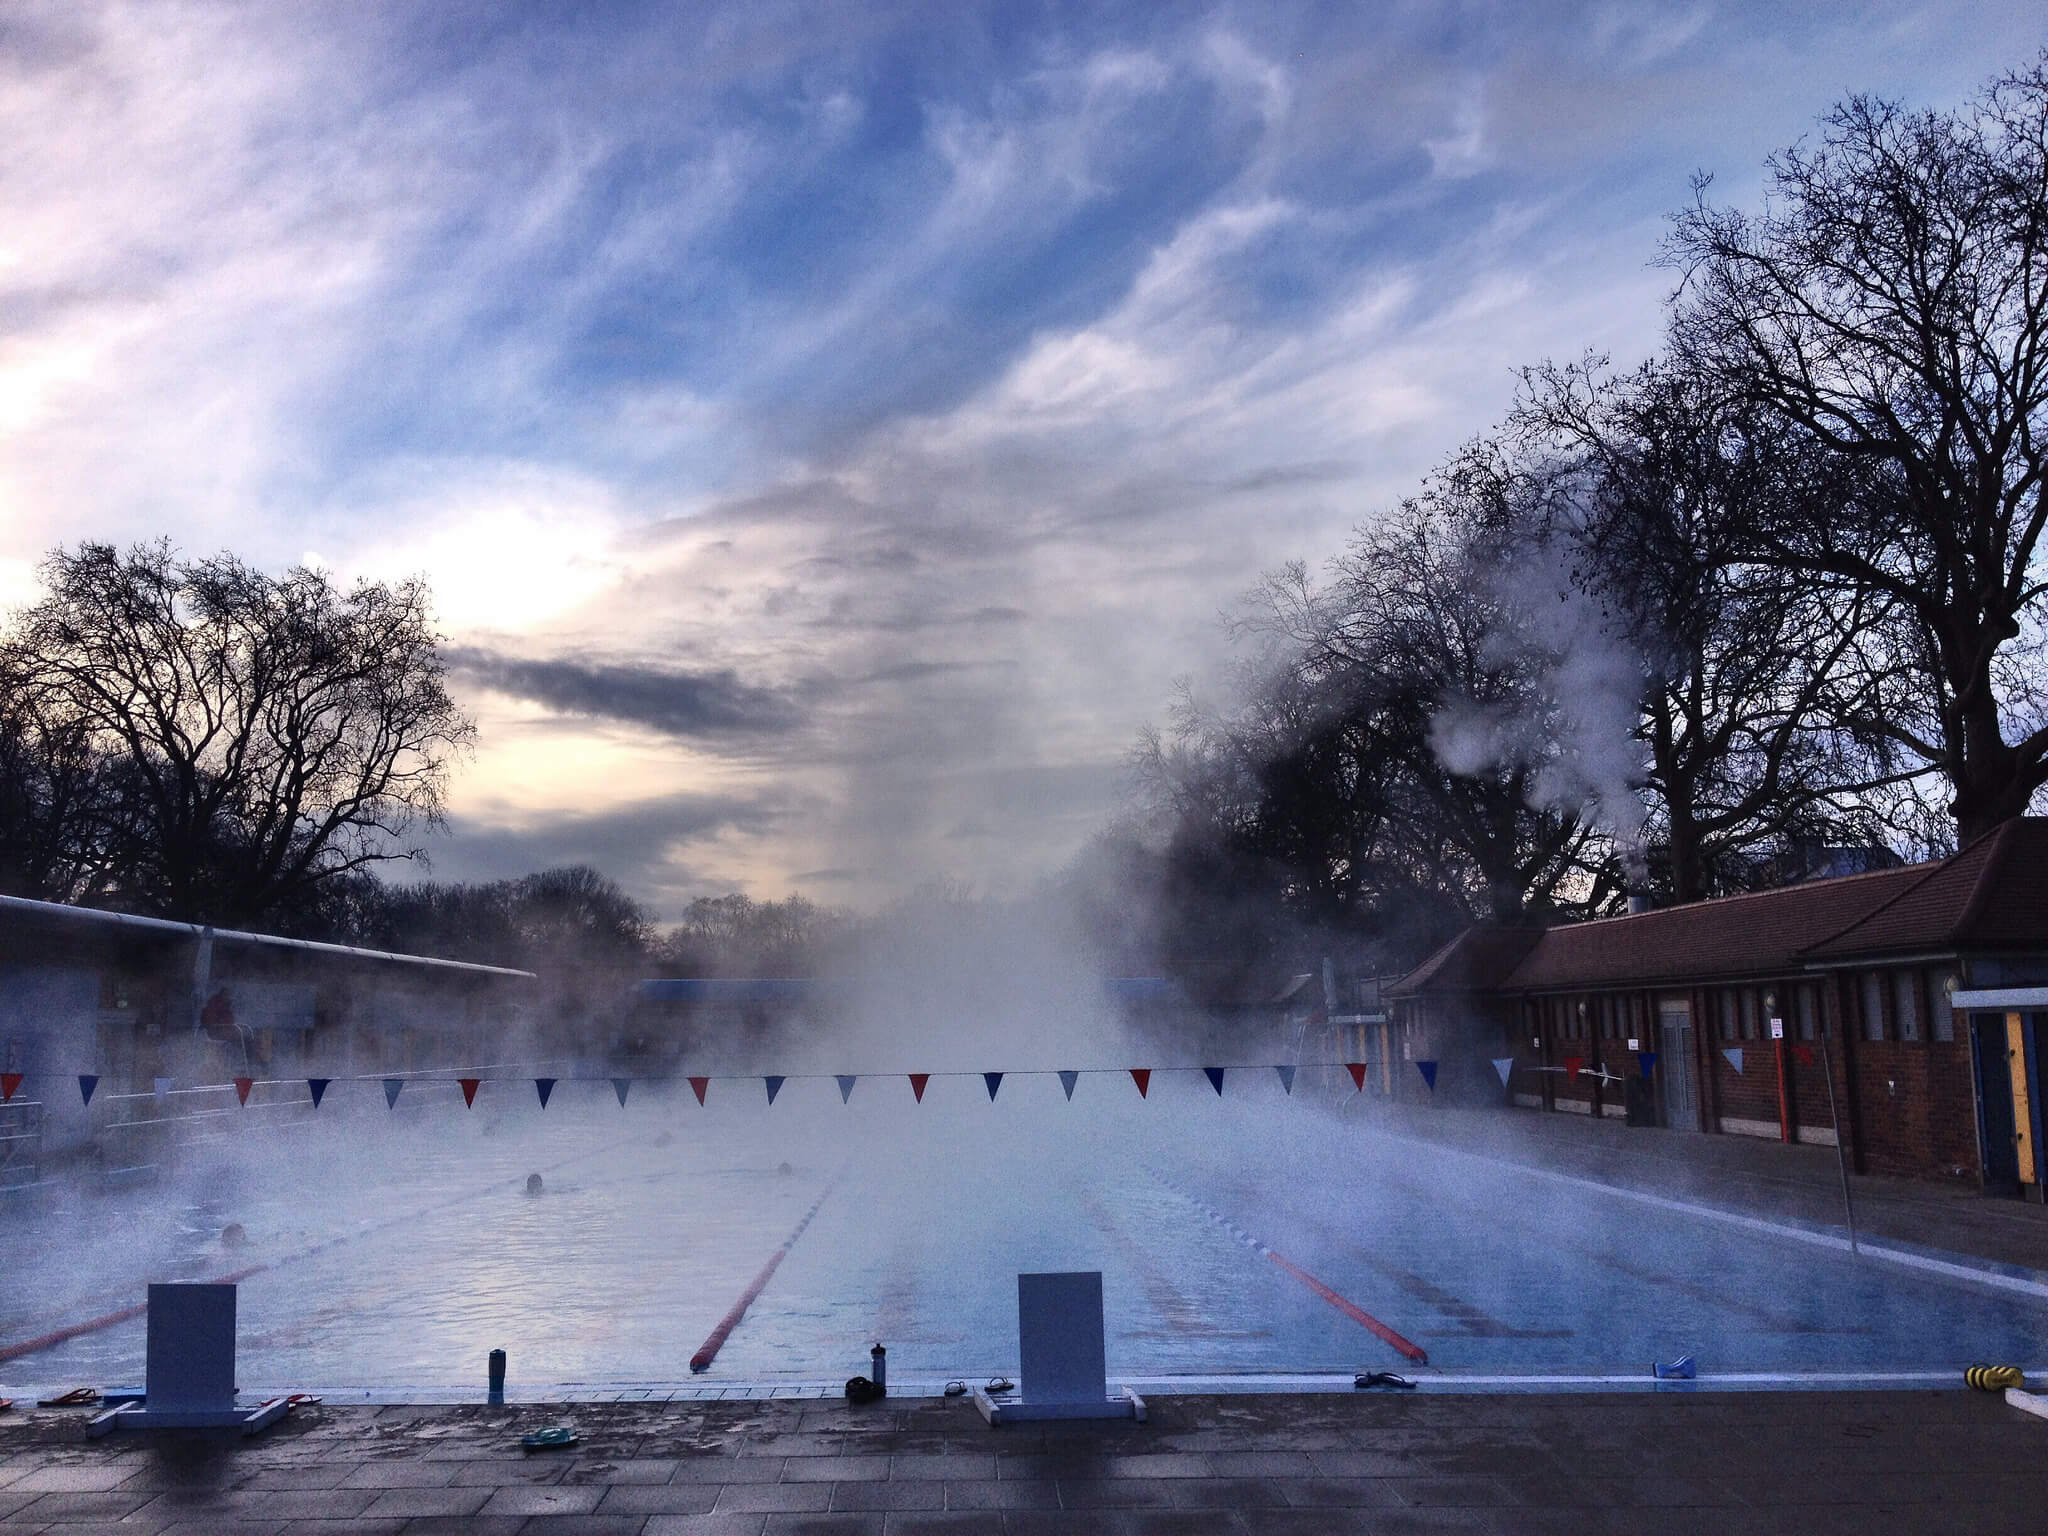 London Fields Lido. Londres, 2016. Foto: Tomás Alonso